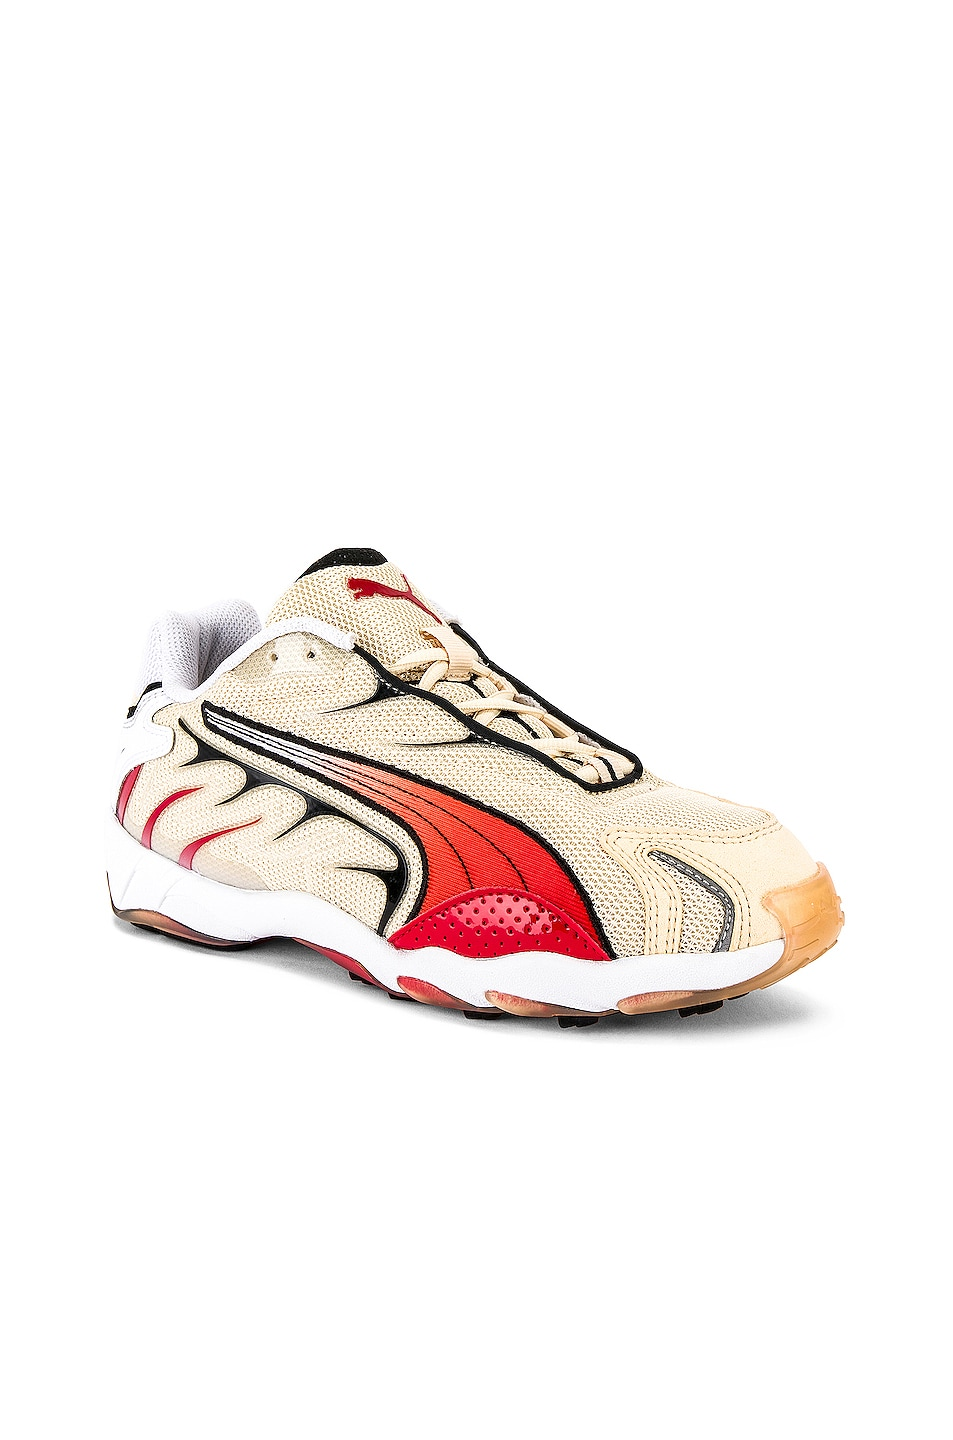 Image 1 of Puma Select Inhale in Summer Melon High Risk Red